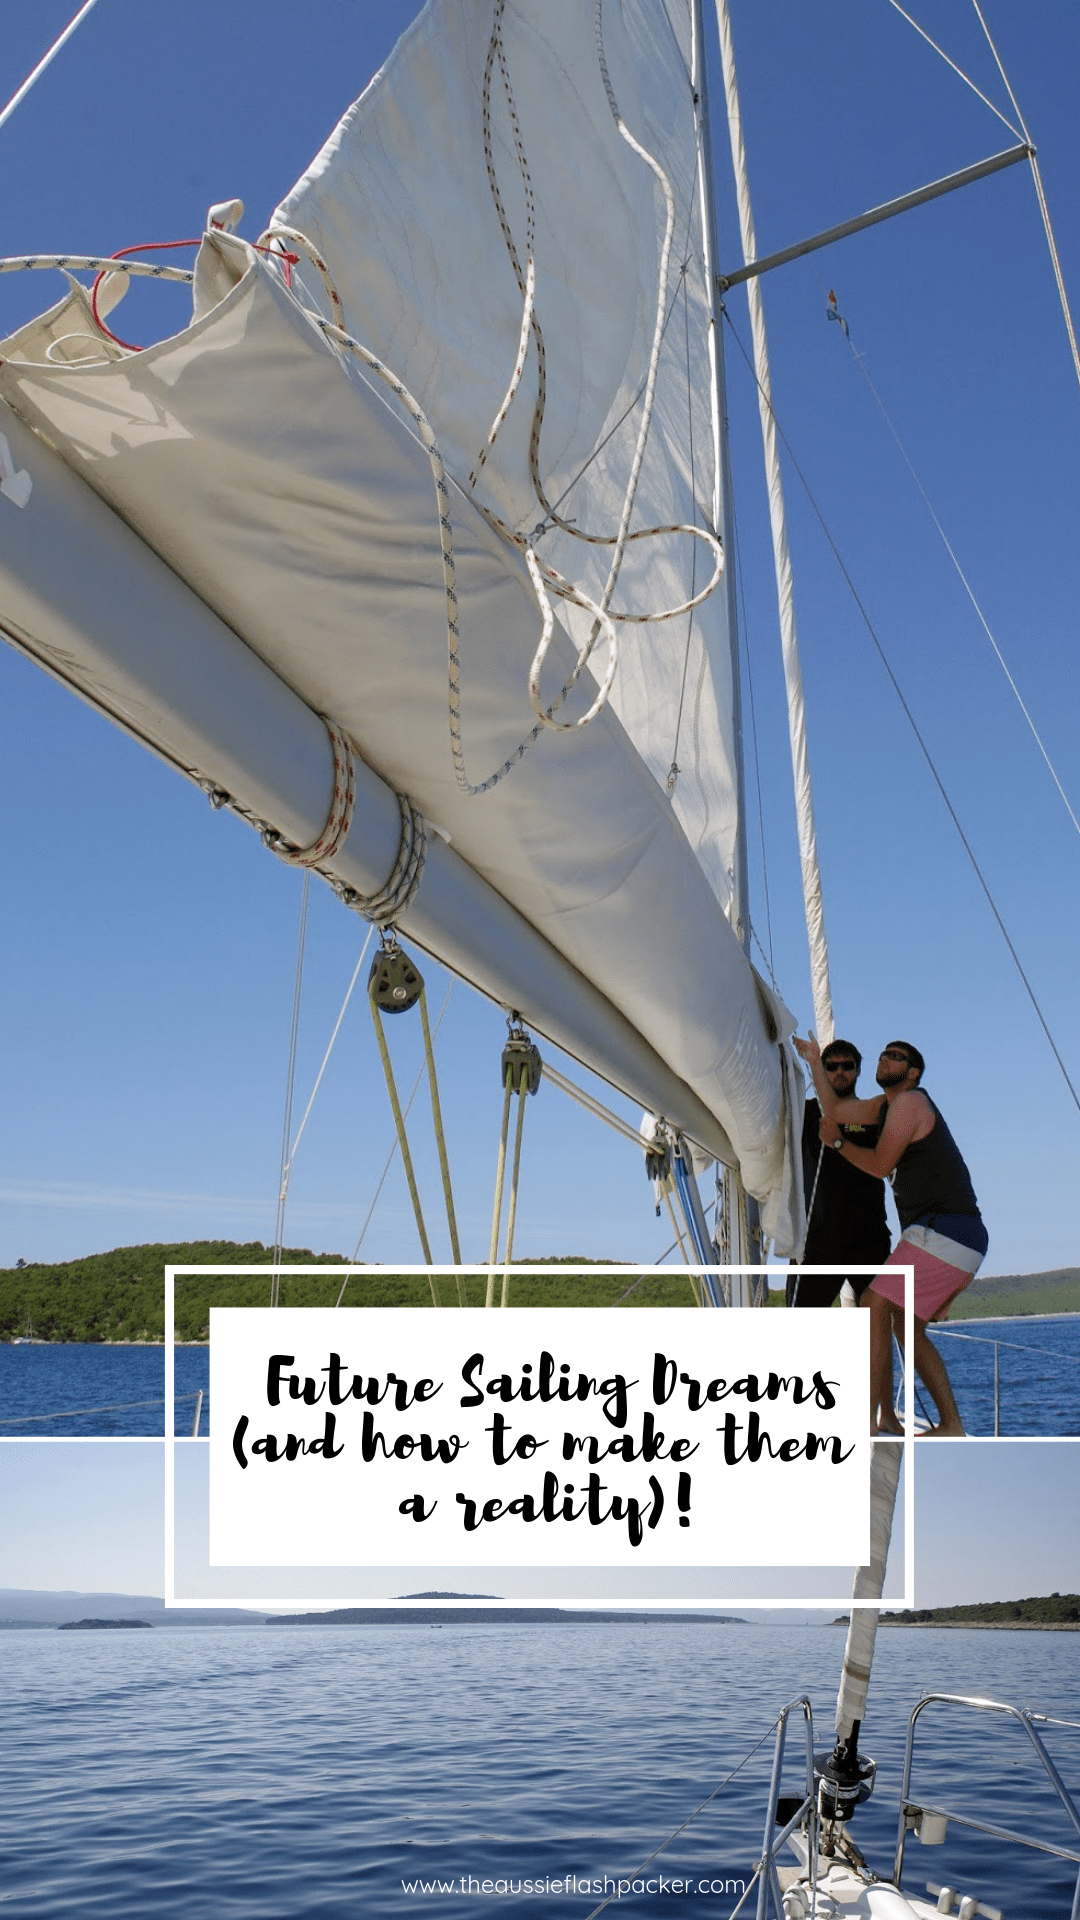 Future Sailing Dreams (and how to make them a reality)